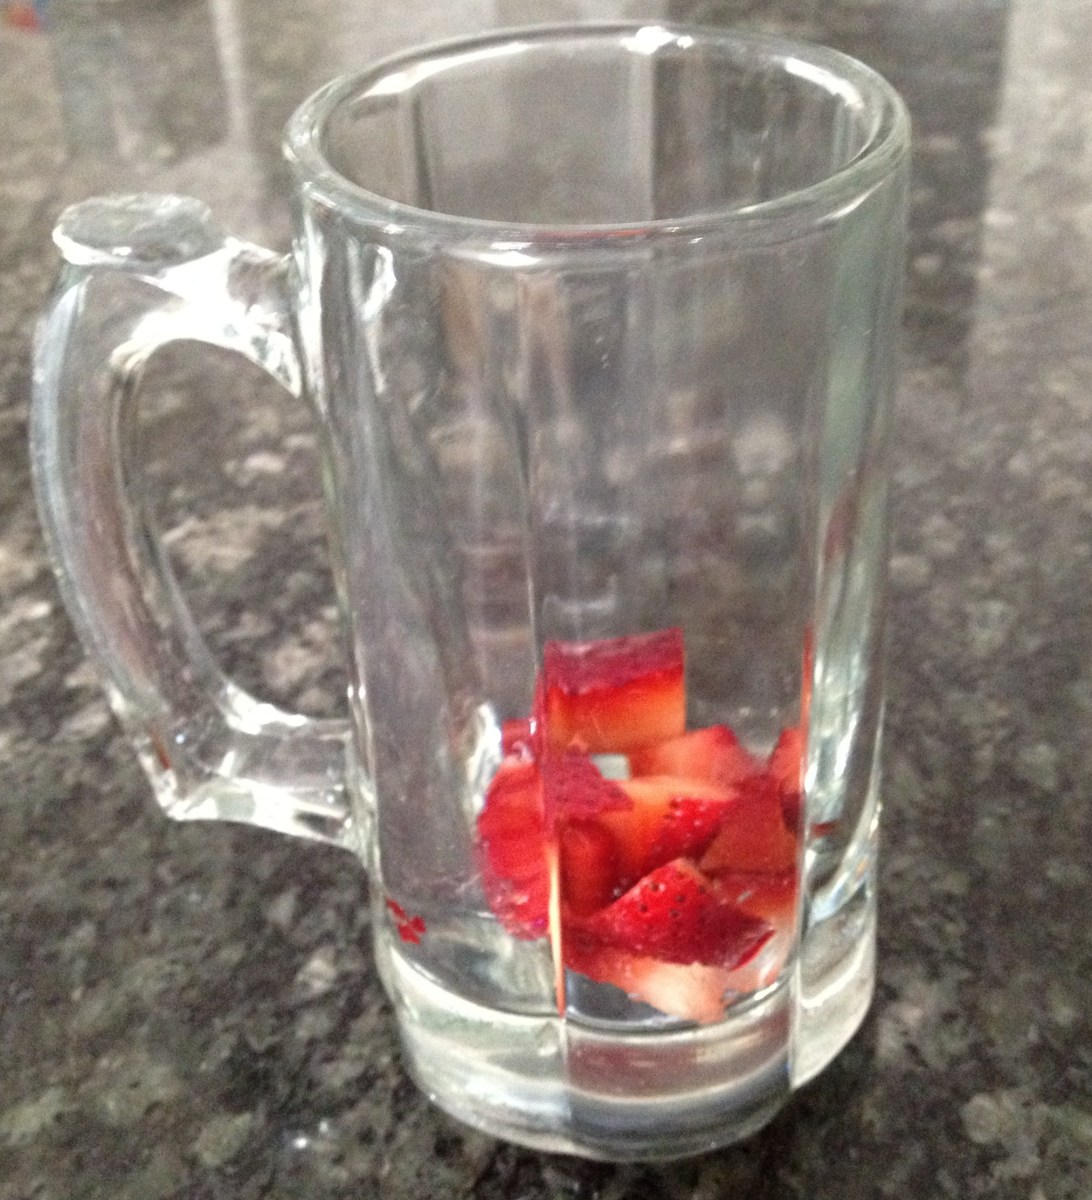 1. Fill bottom of clear glass or mug with diced strawberries.